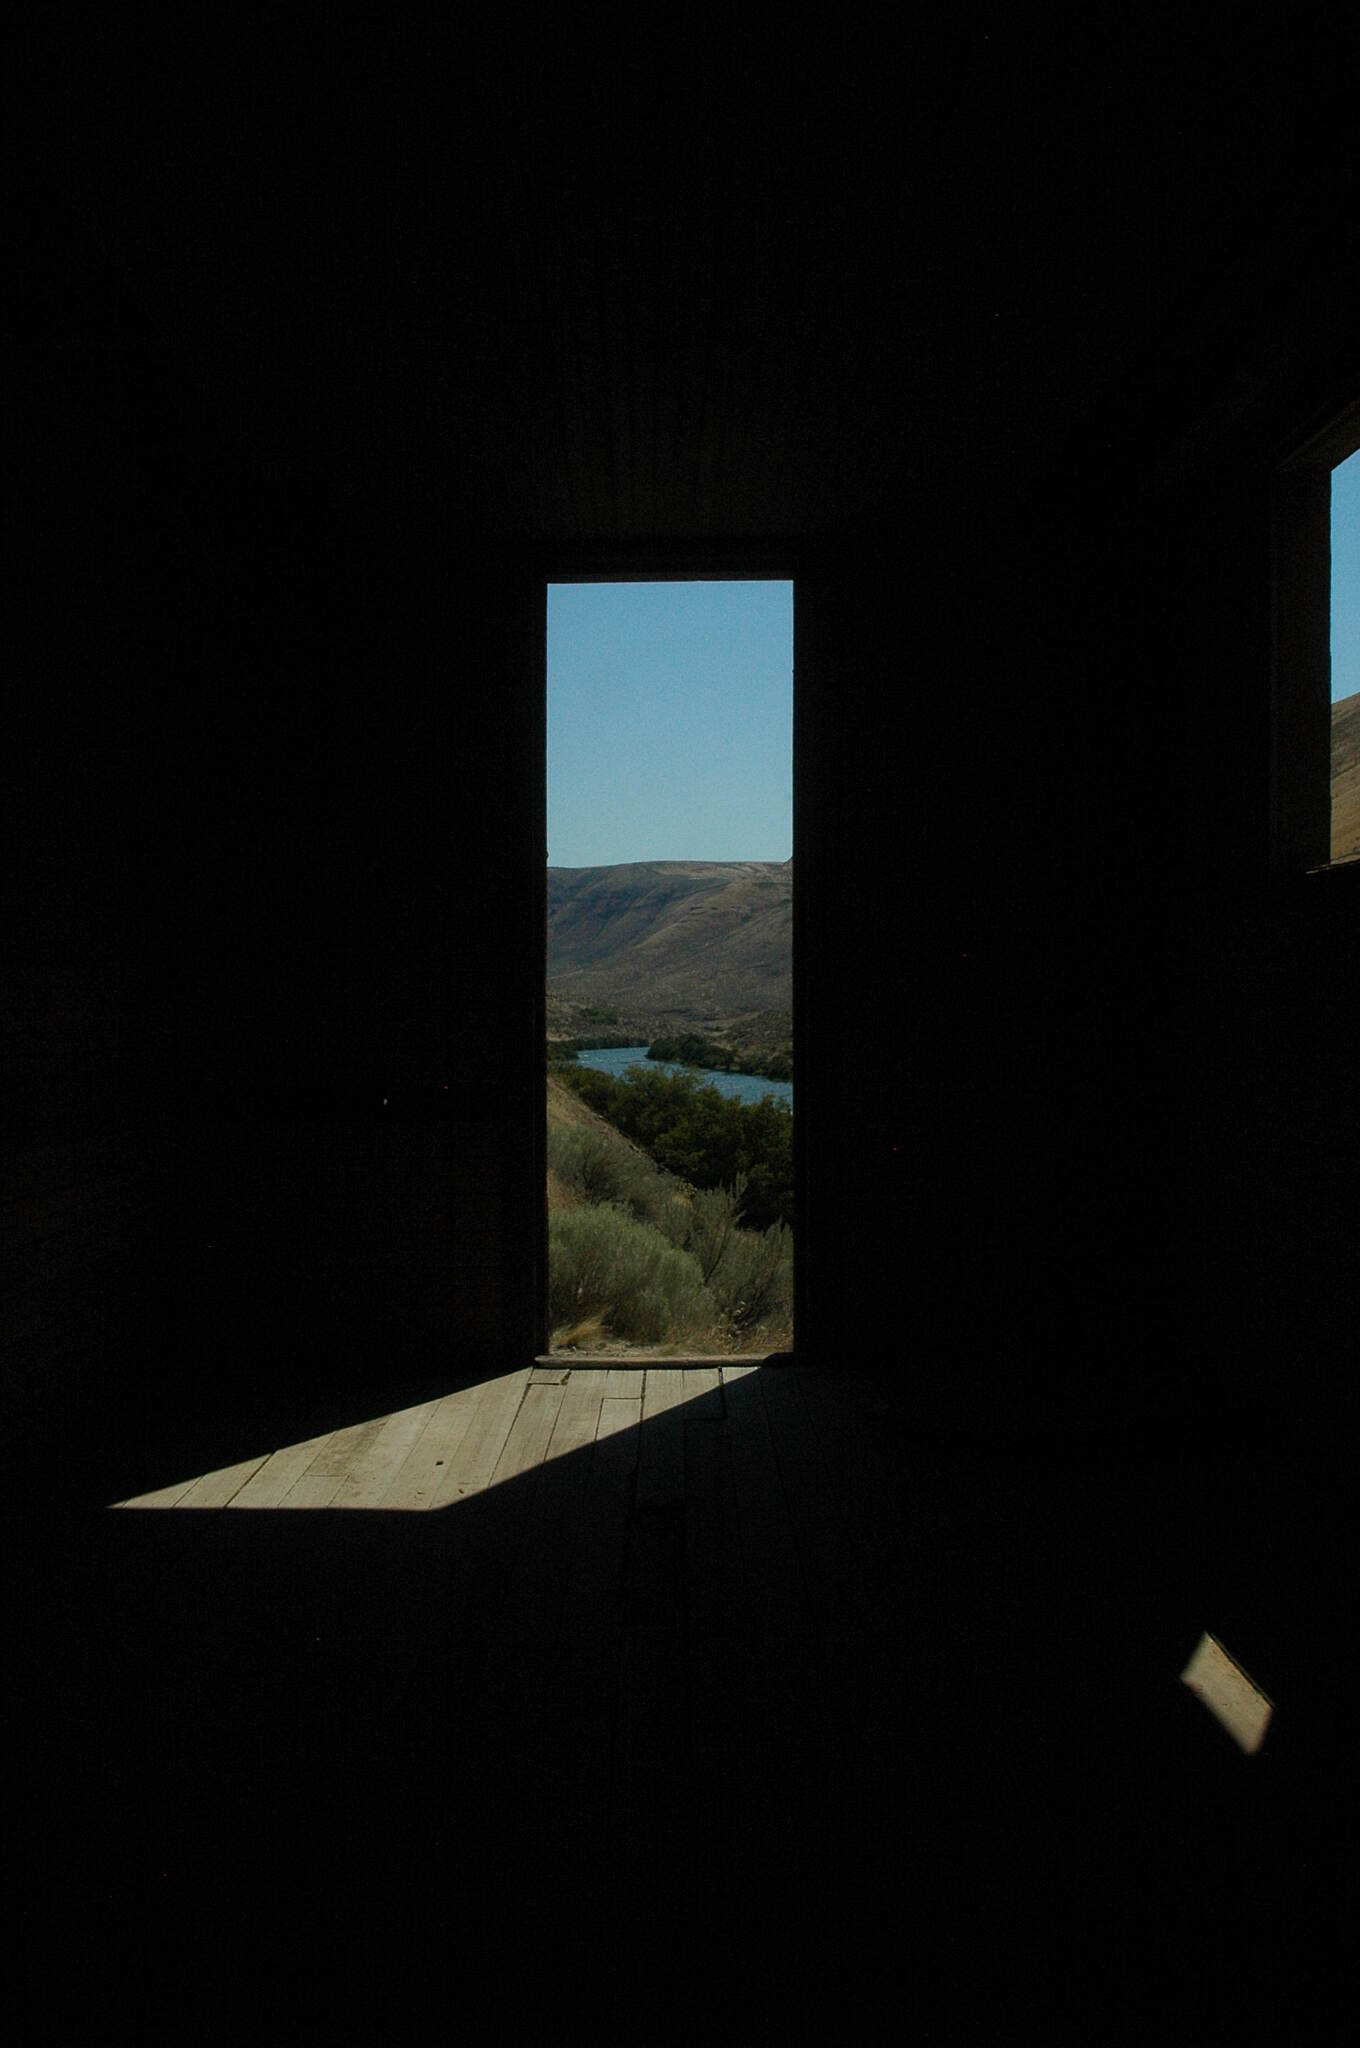 Deschutes River Railbed Trail View from inside old boxcar You'll find a seldom used campground here with pit toilets a few hundred feet away, about 10 - 12 miles from trail head